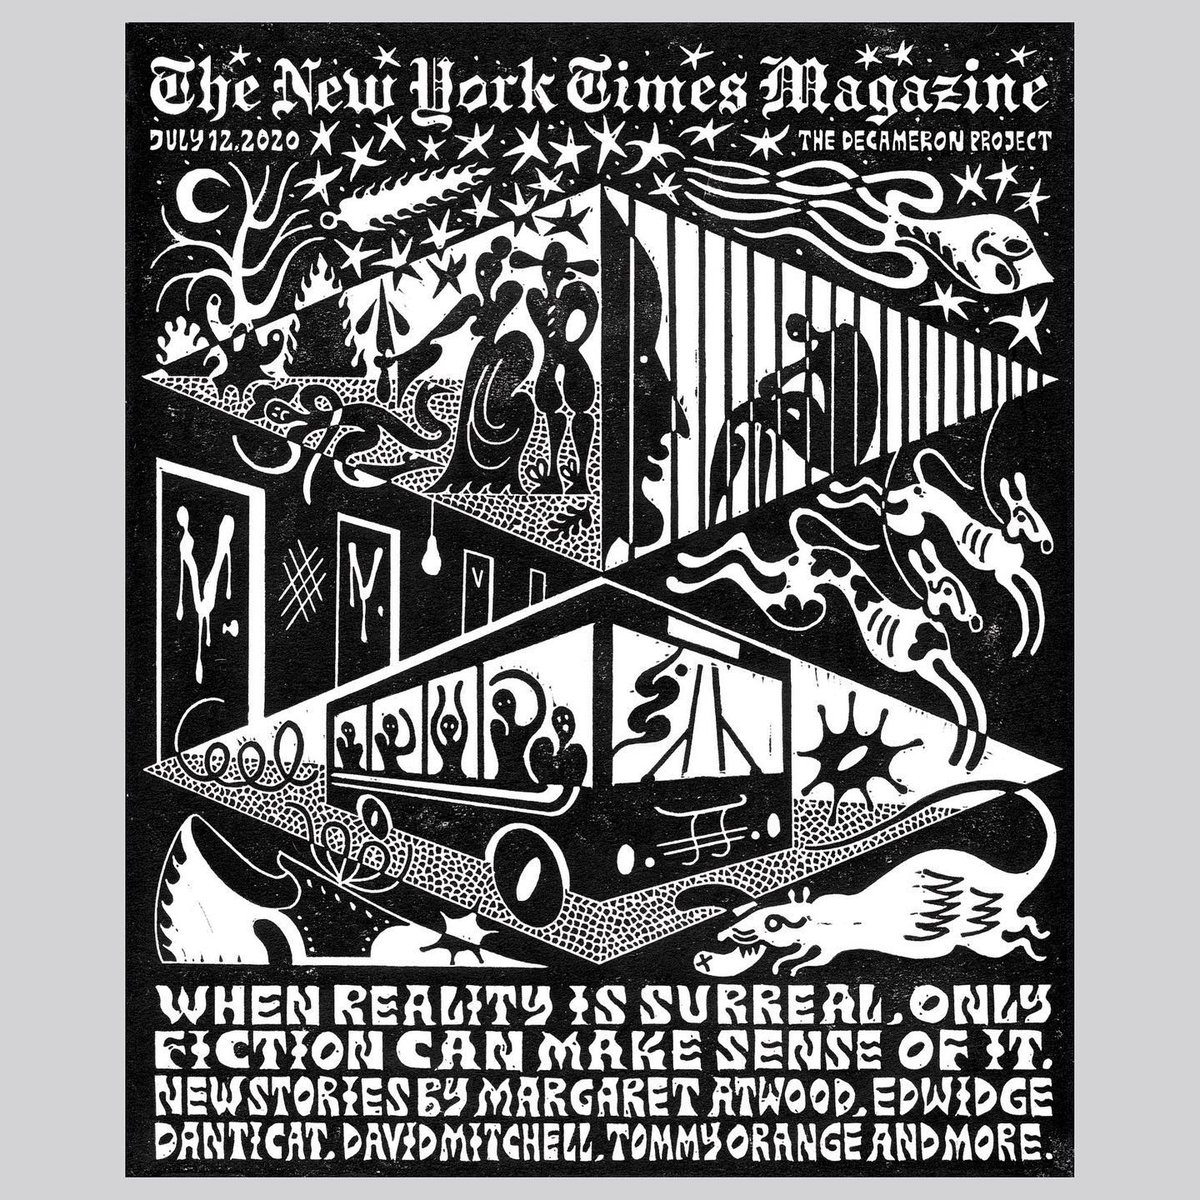 In Print This Weekend: 29 authors. 29 short stories. Read @NYTmag's The Decameron Project, an entire issue of new, original fiction. https://t.co/ReupXxWUTa https://t.co/pqfH5CTy75